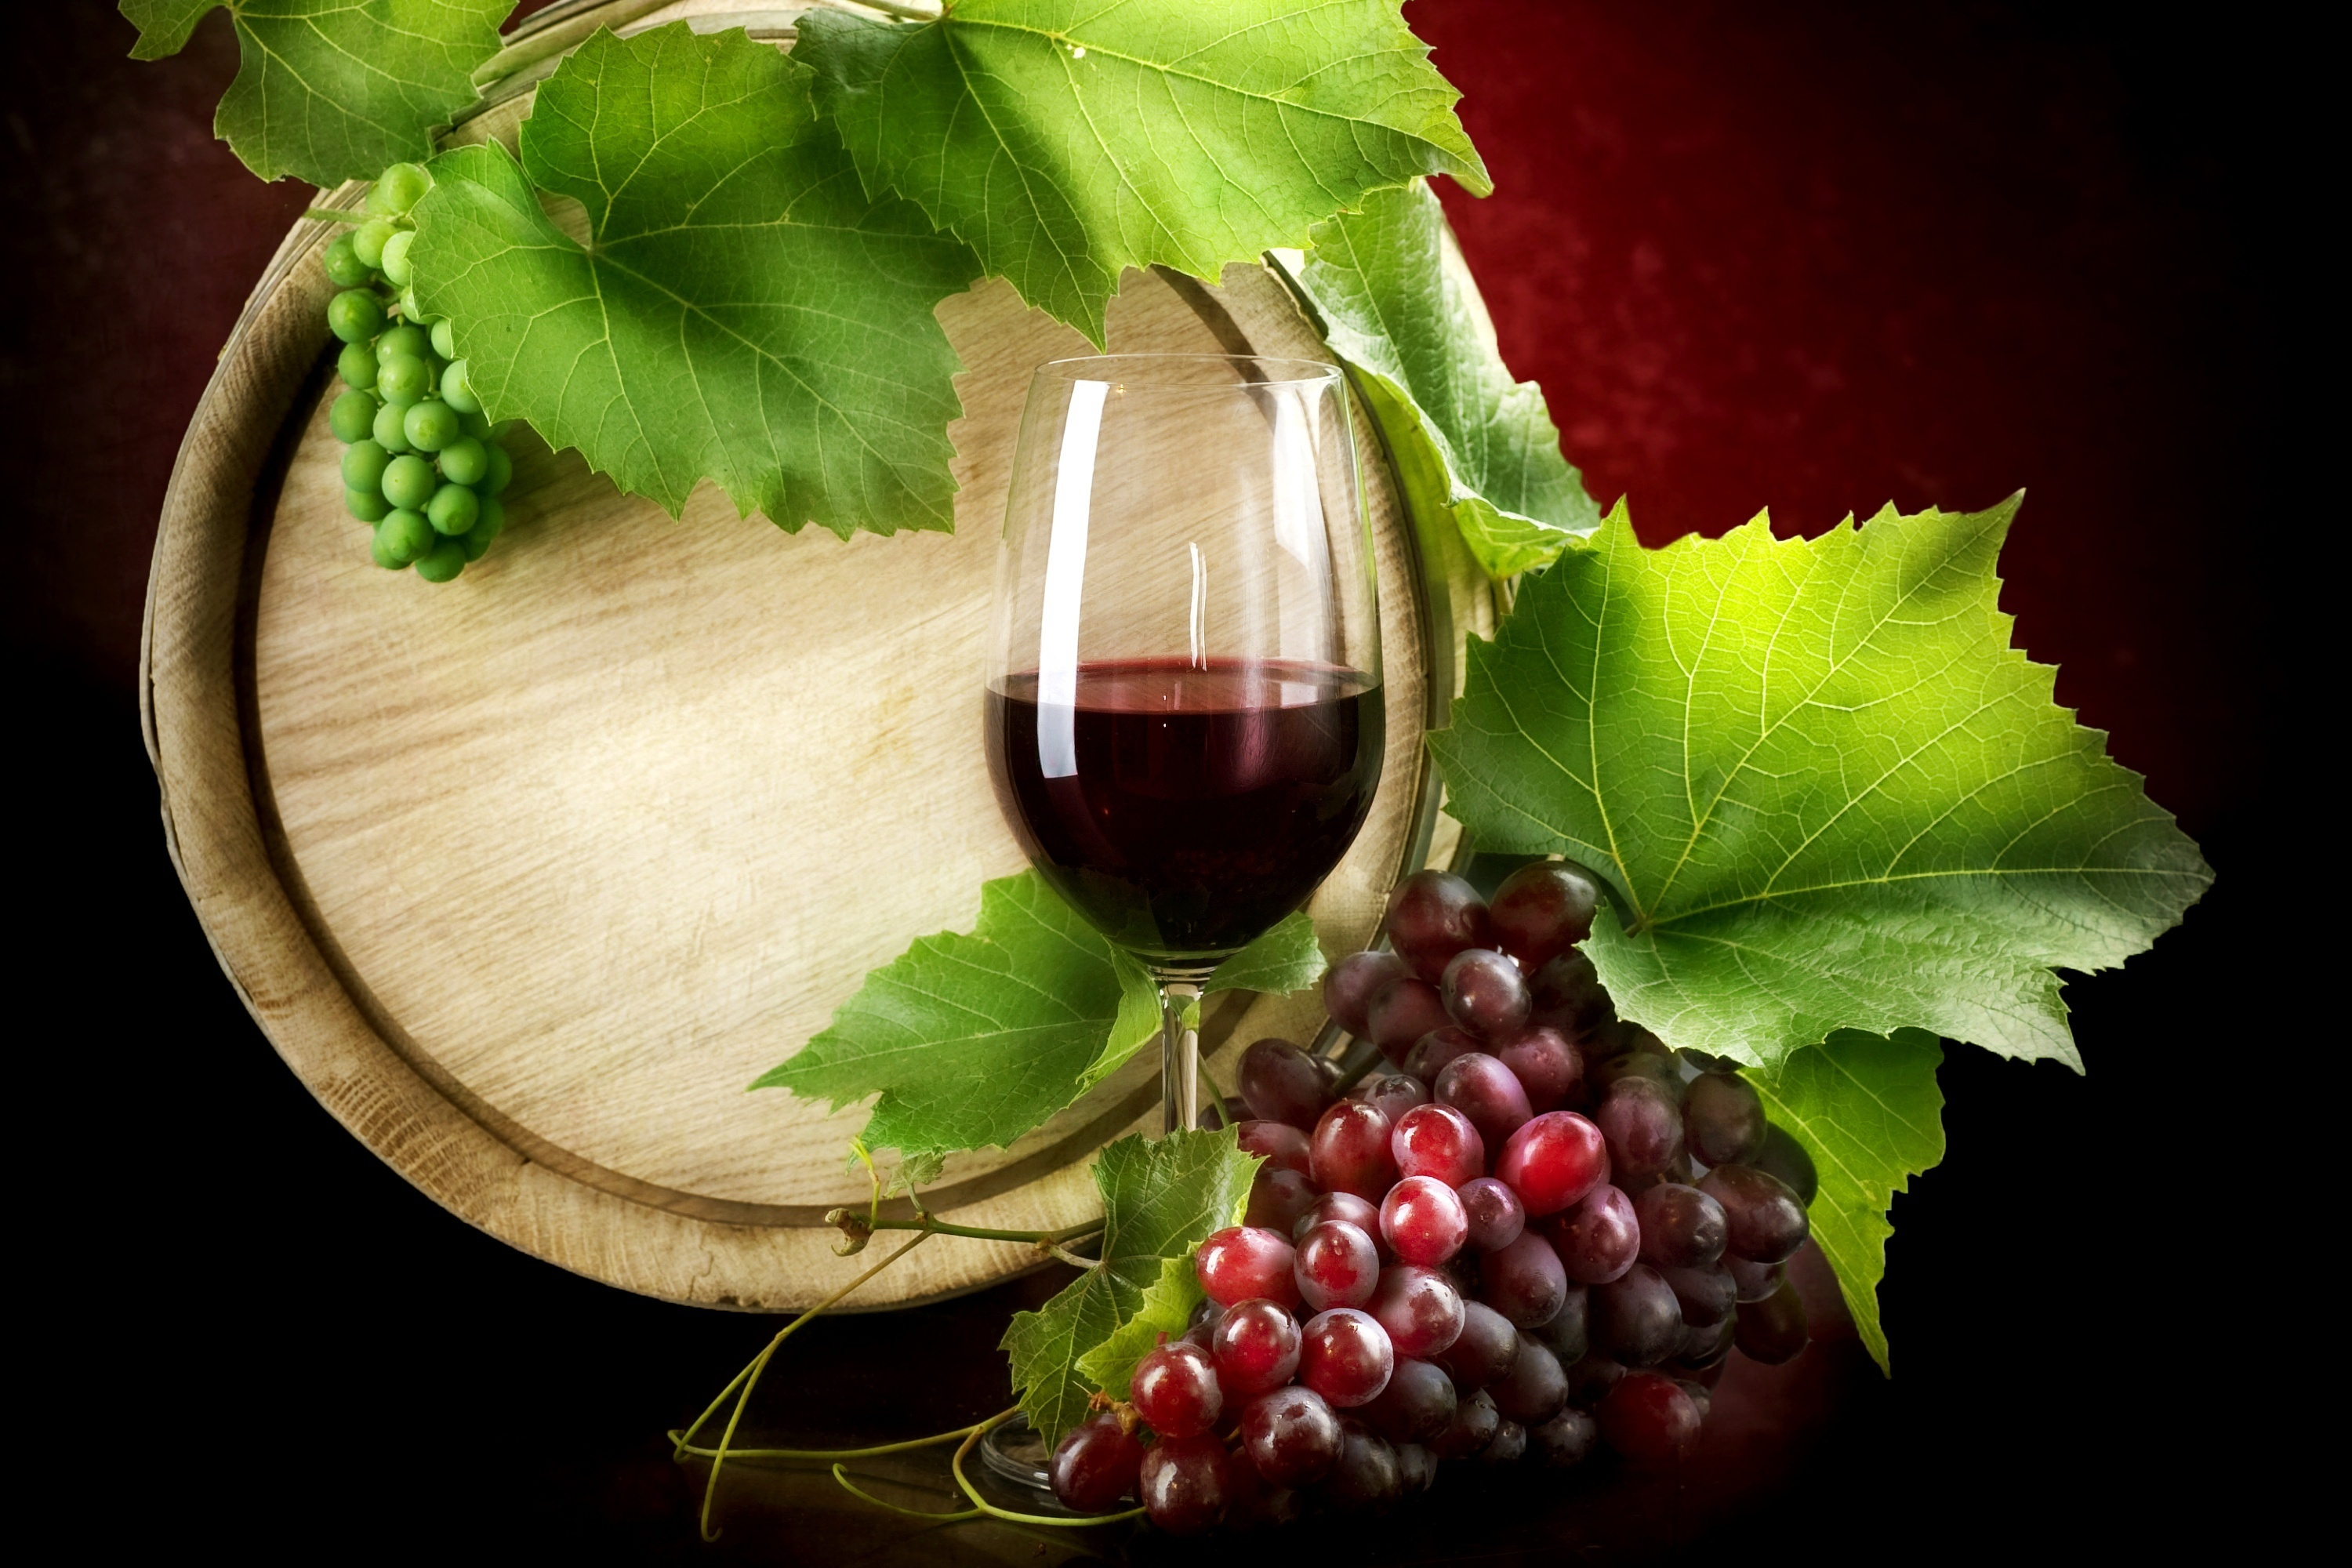 Grapes Full HD Wallpaper and Background Image | 3000x2000 ...